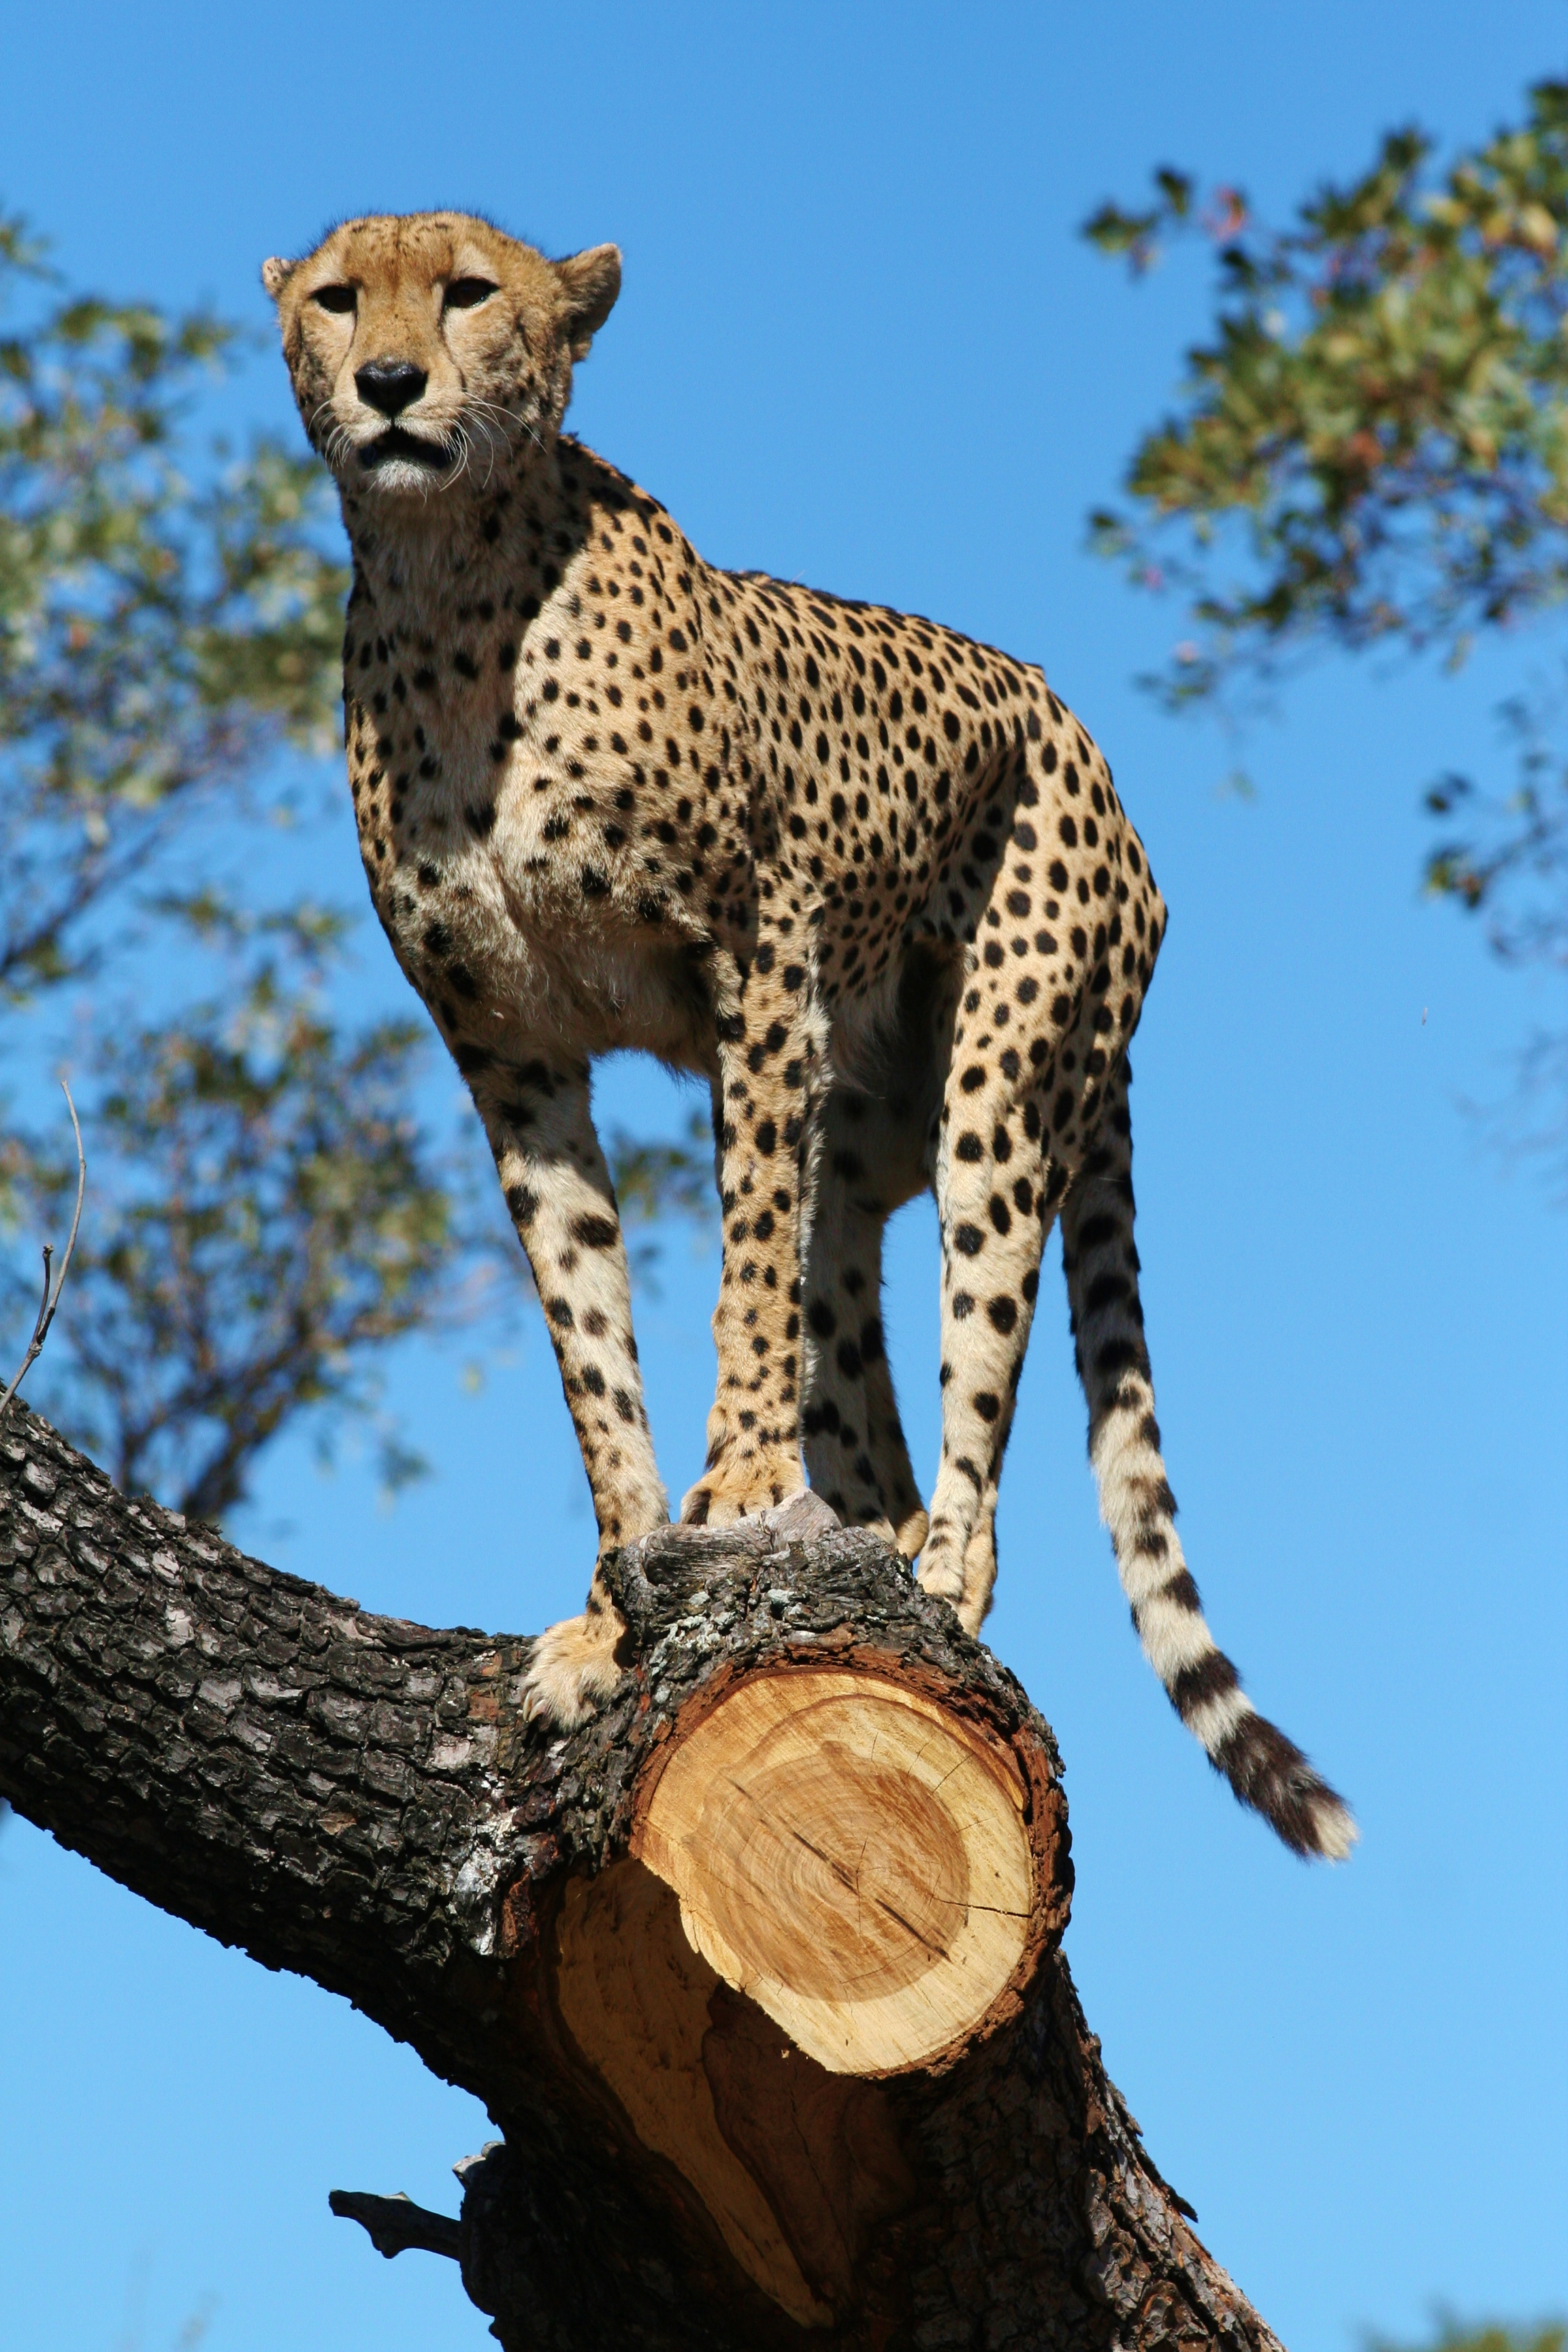 It is a privilege to spot one of these cheetah, as there are only estimated to be about 400 in the Kruger National Park